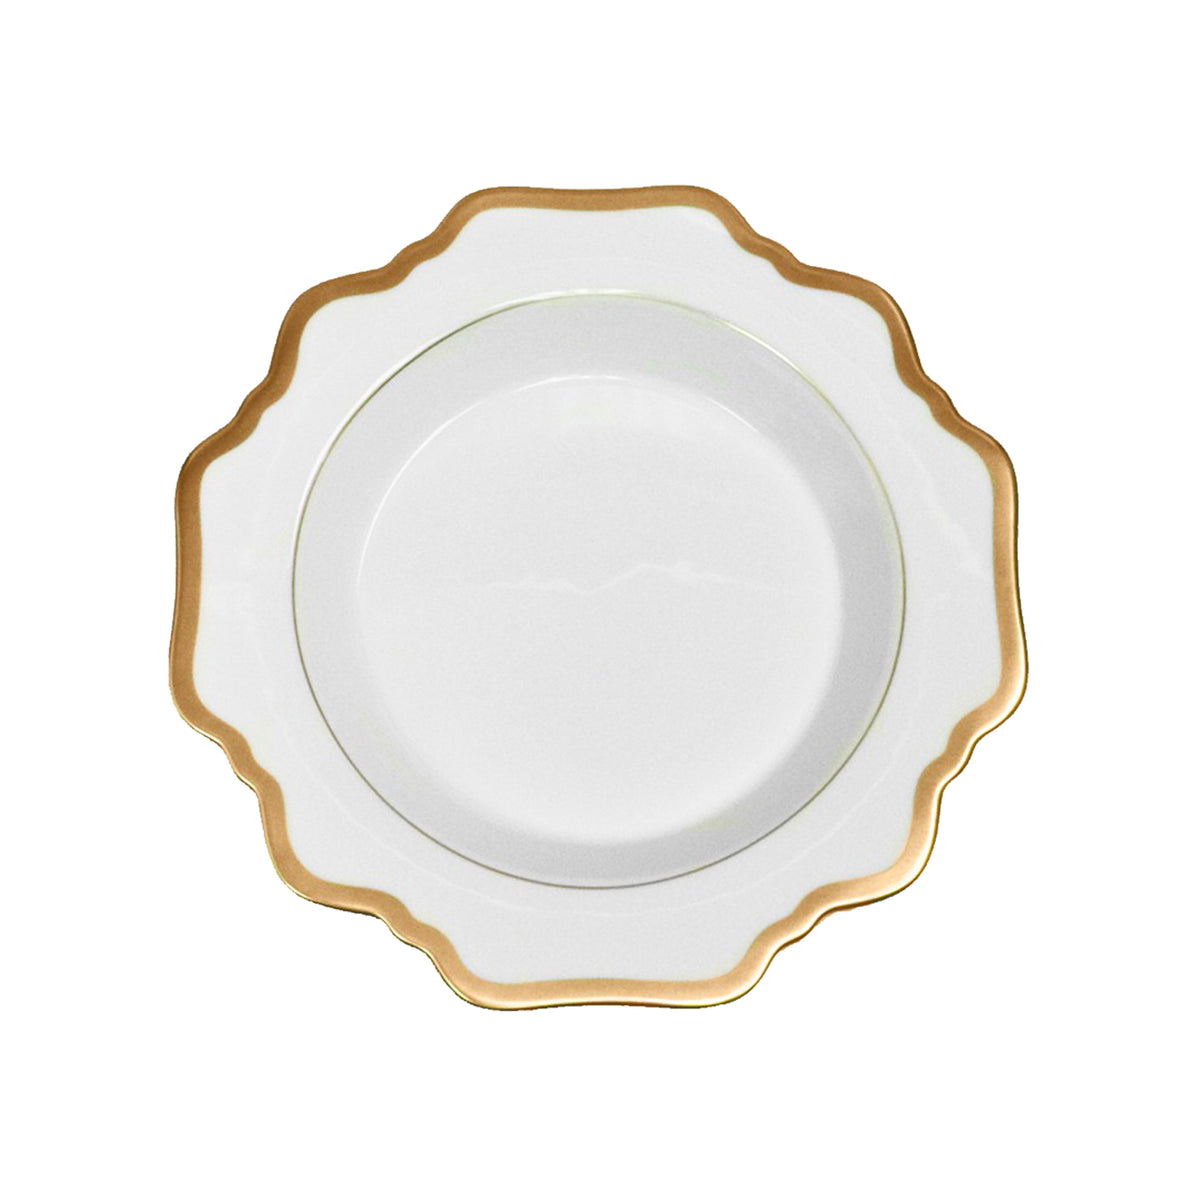 Antique White and Gold Rim Soup Plate